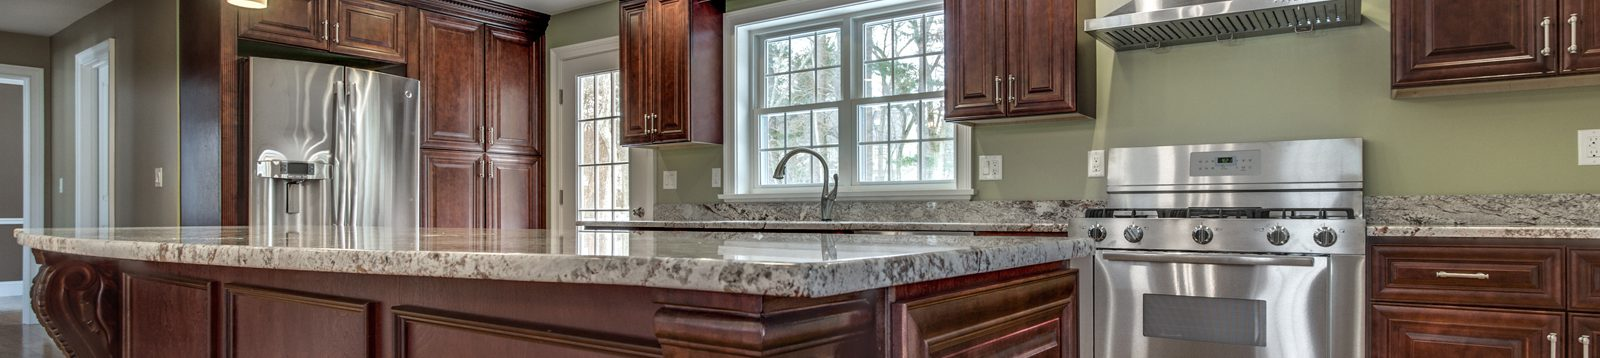 kitchen collection ju0026k cabinetry boston